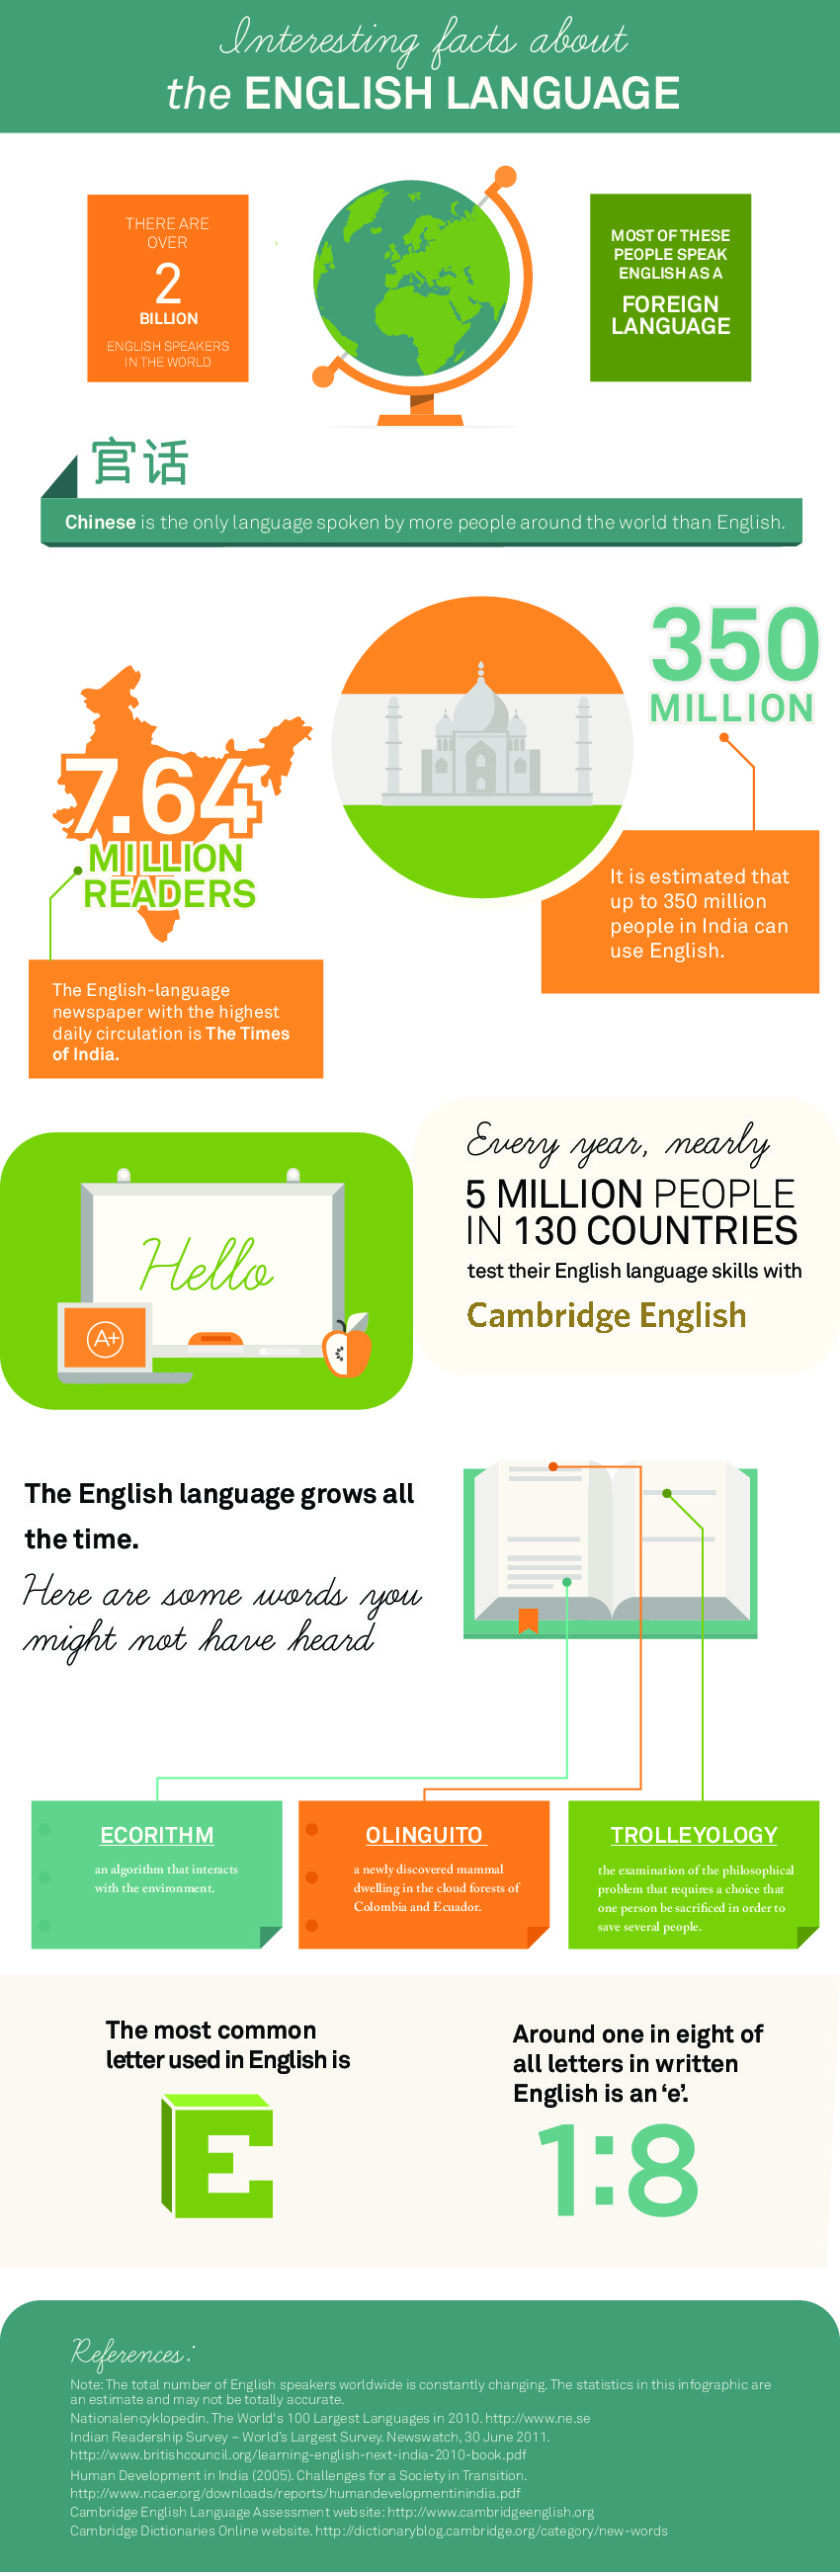 Interesting facts about the English language #infographic